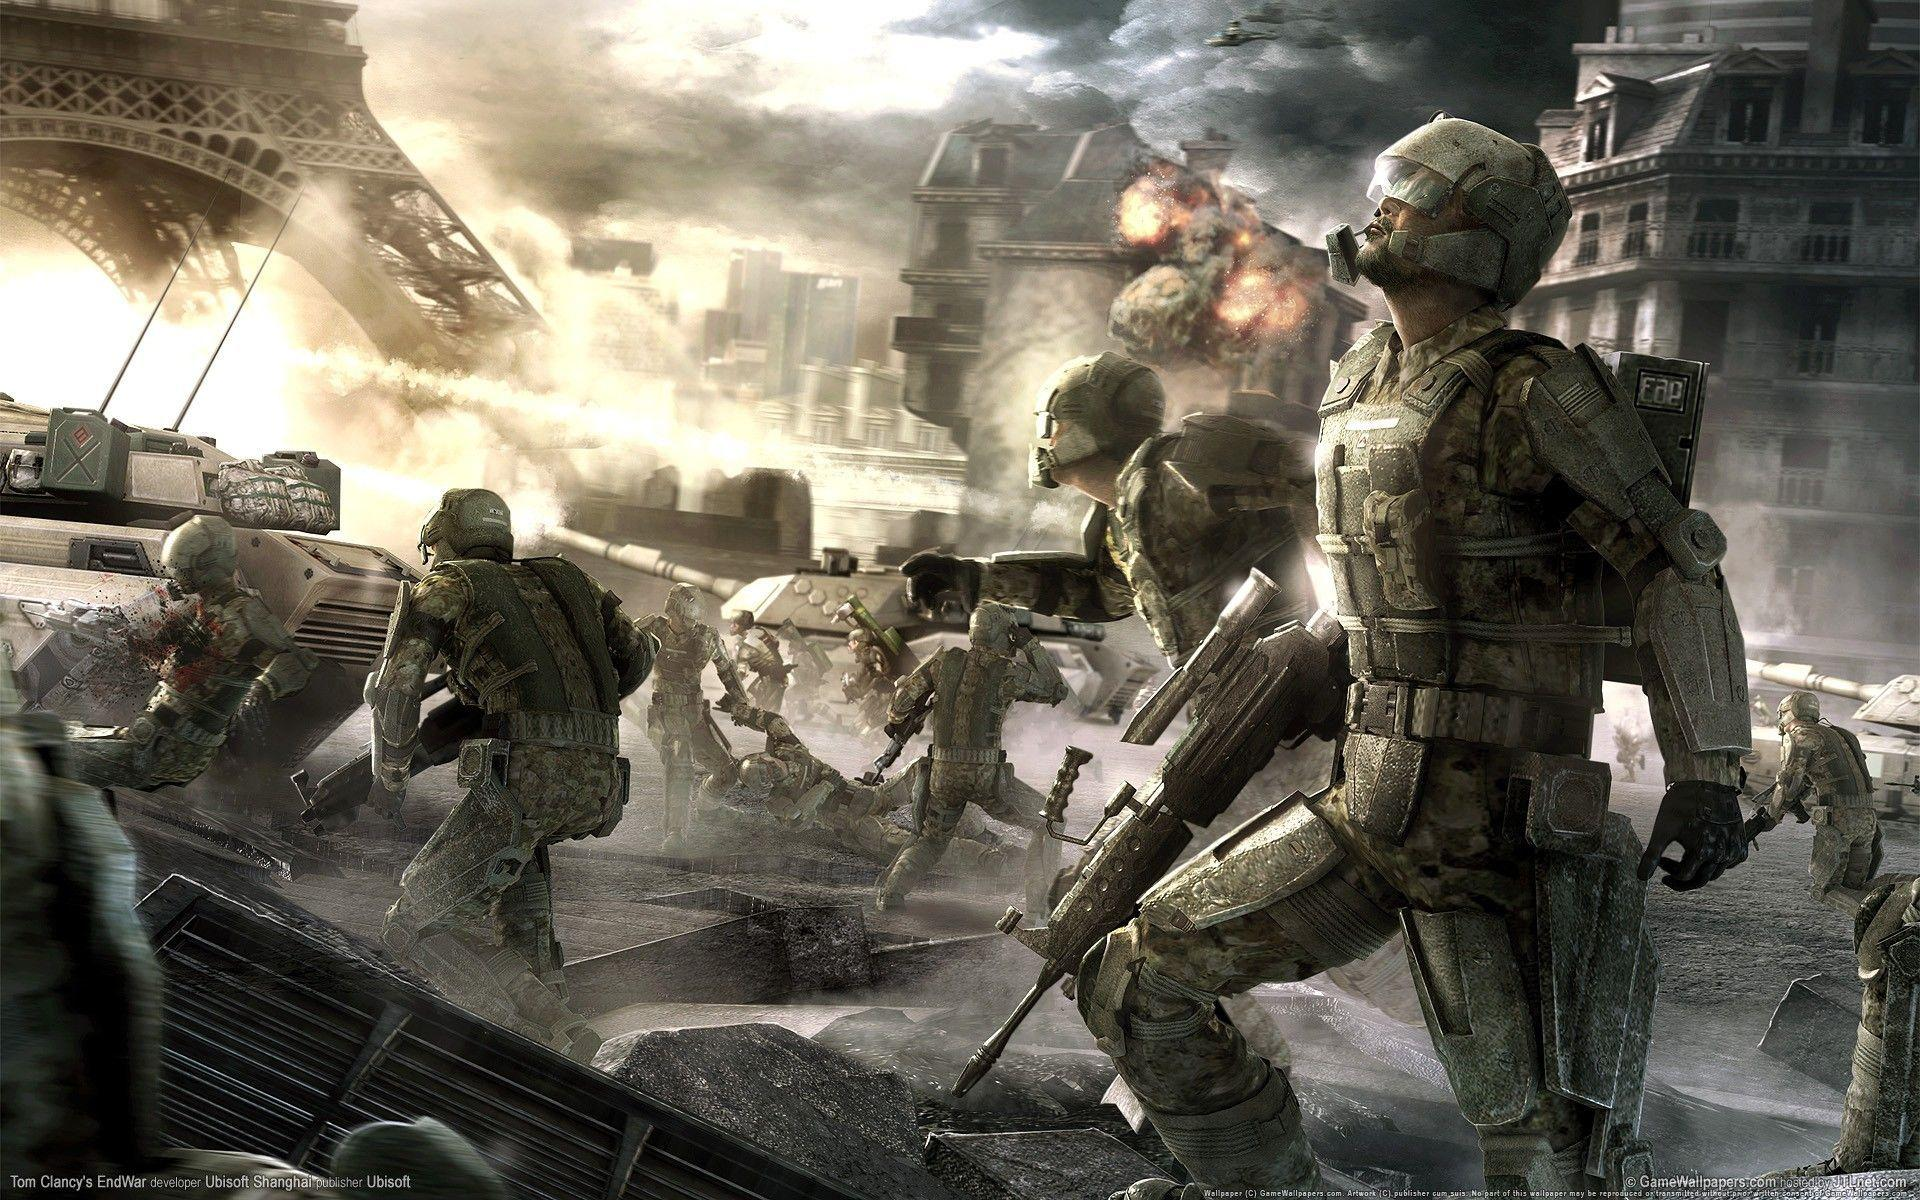 Cool video game wallpapers wallpaper cave - Best war wallpapers hd ...